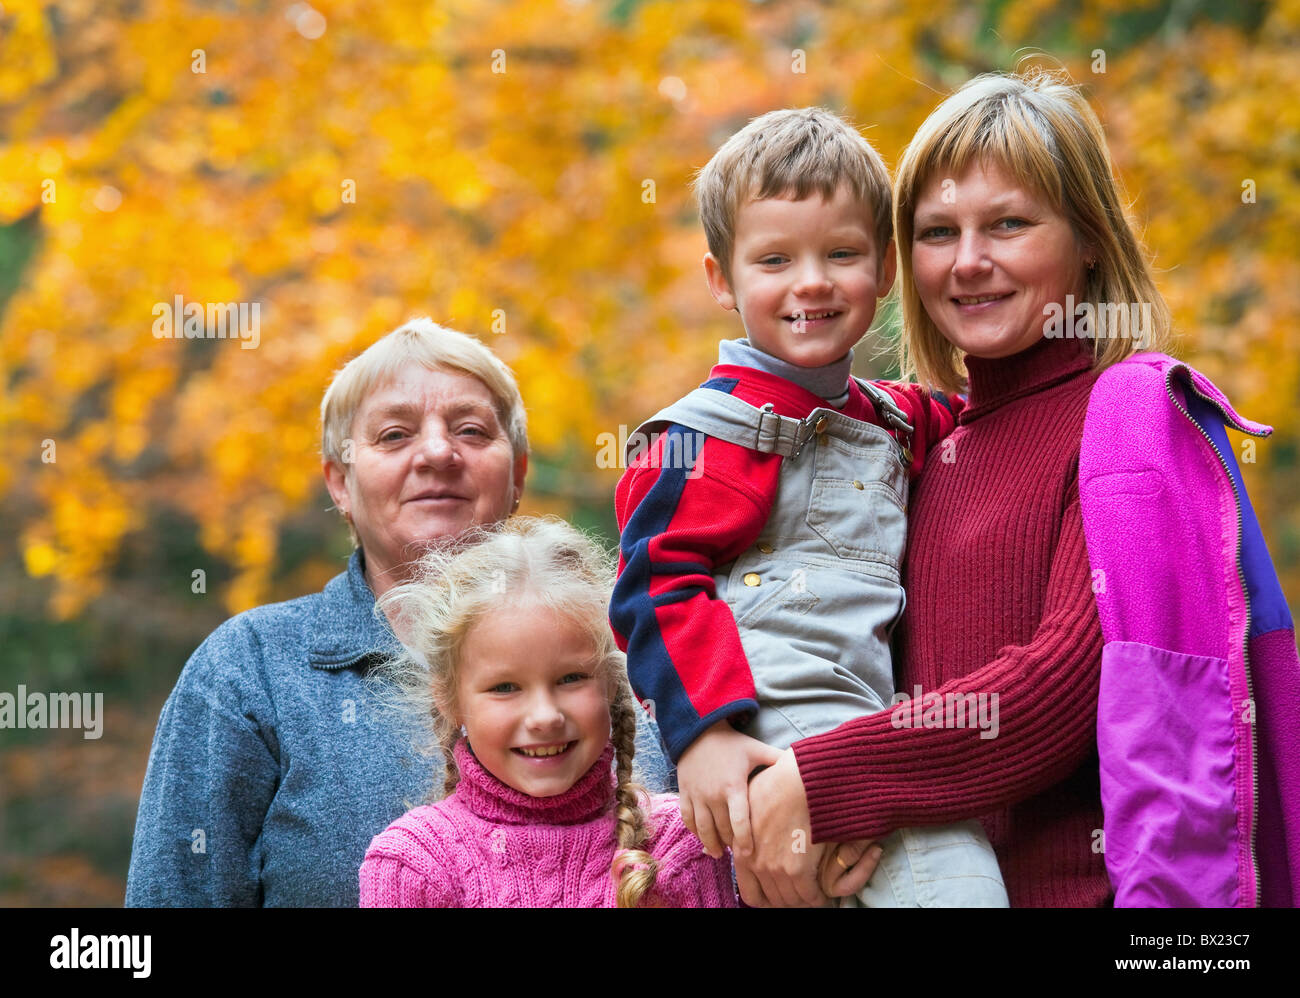 Happy family outdoor portrait in a autumn mountain walk - Stock Image